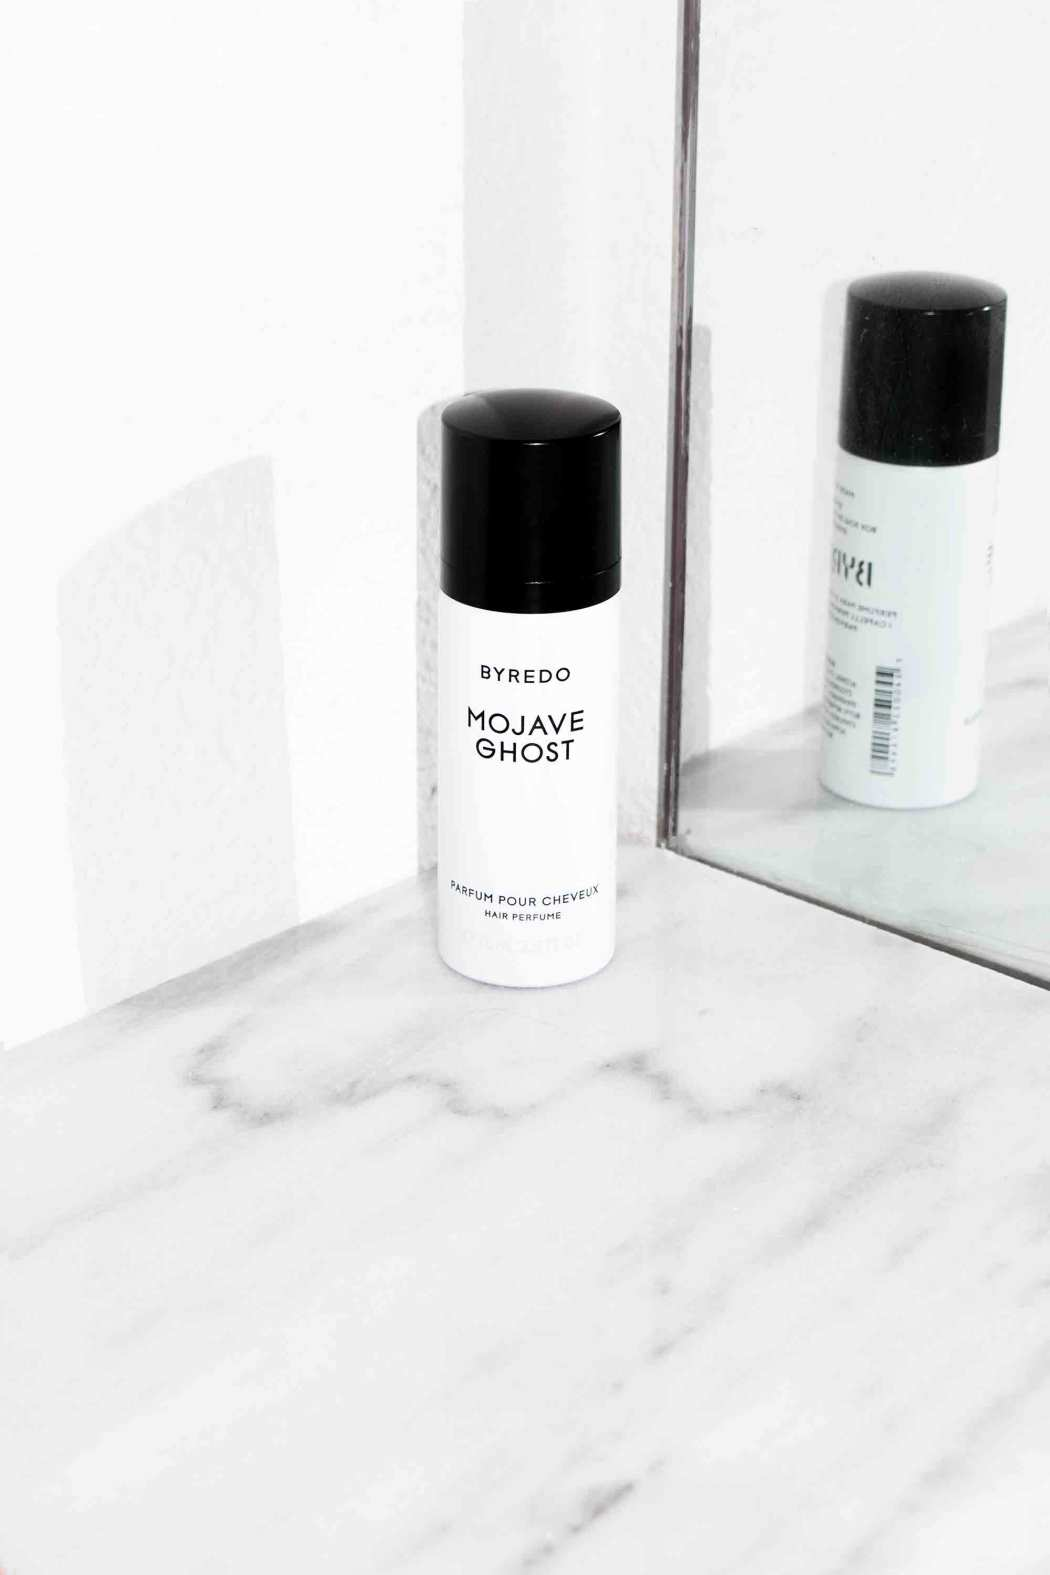 Byredo Mojave Ghost hair perfume review